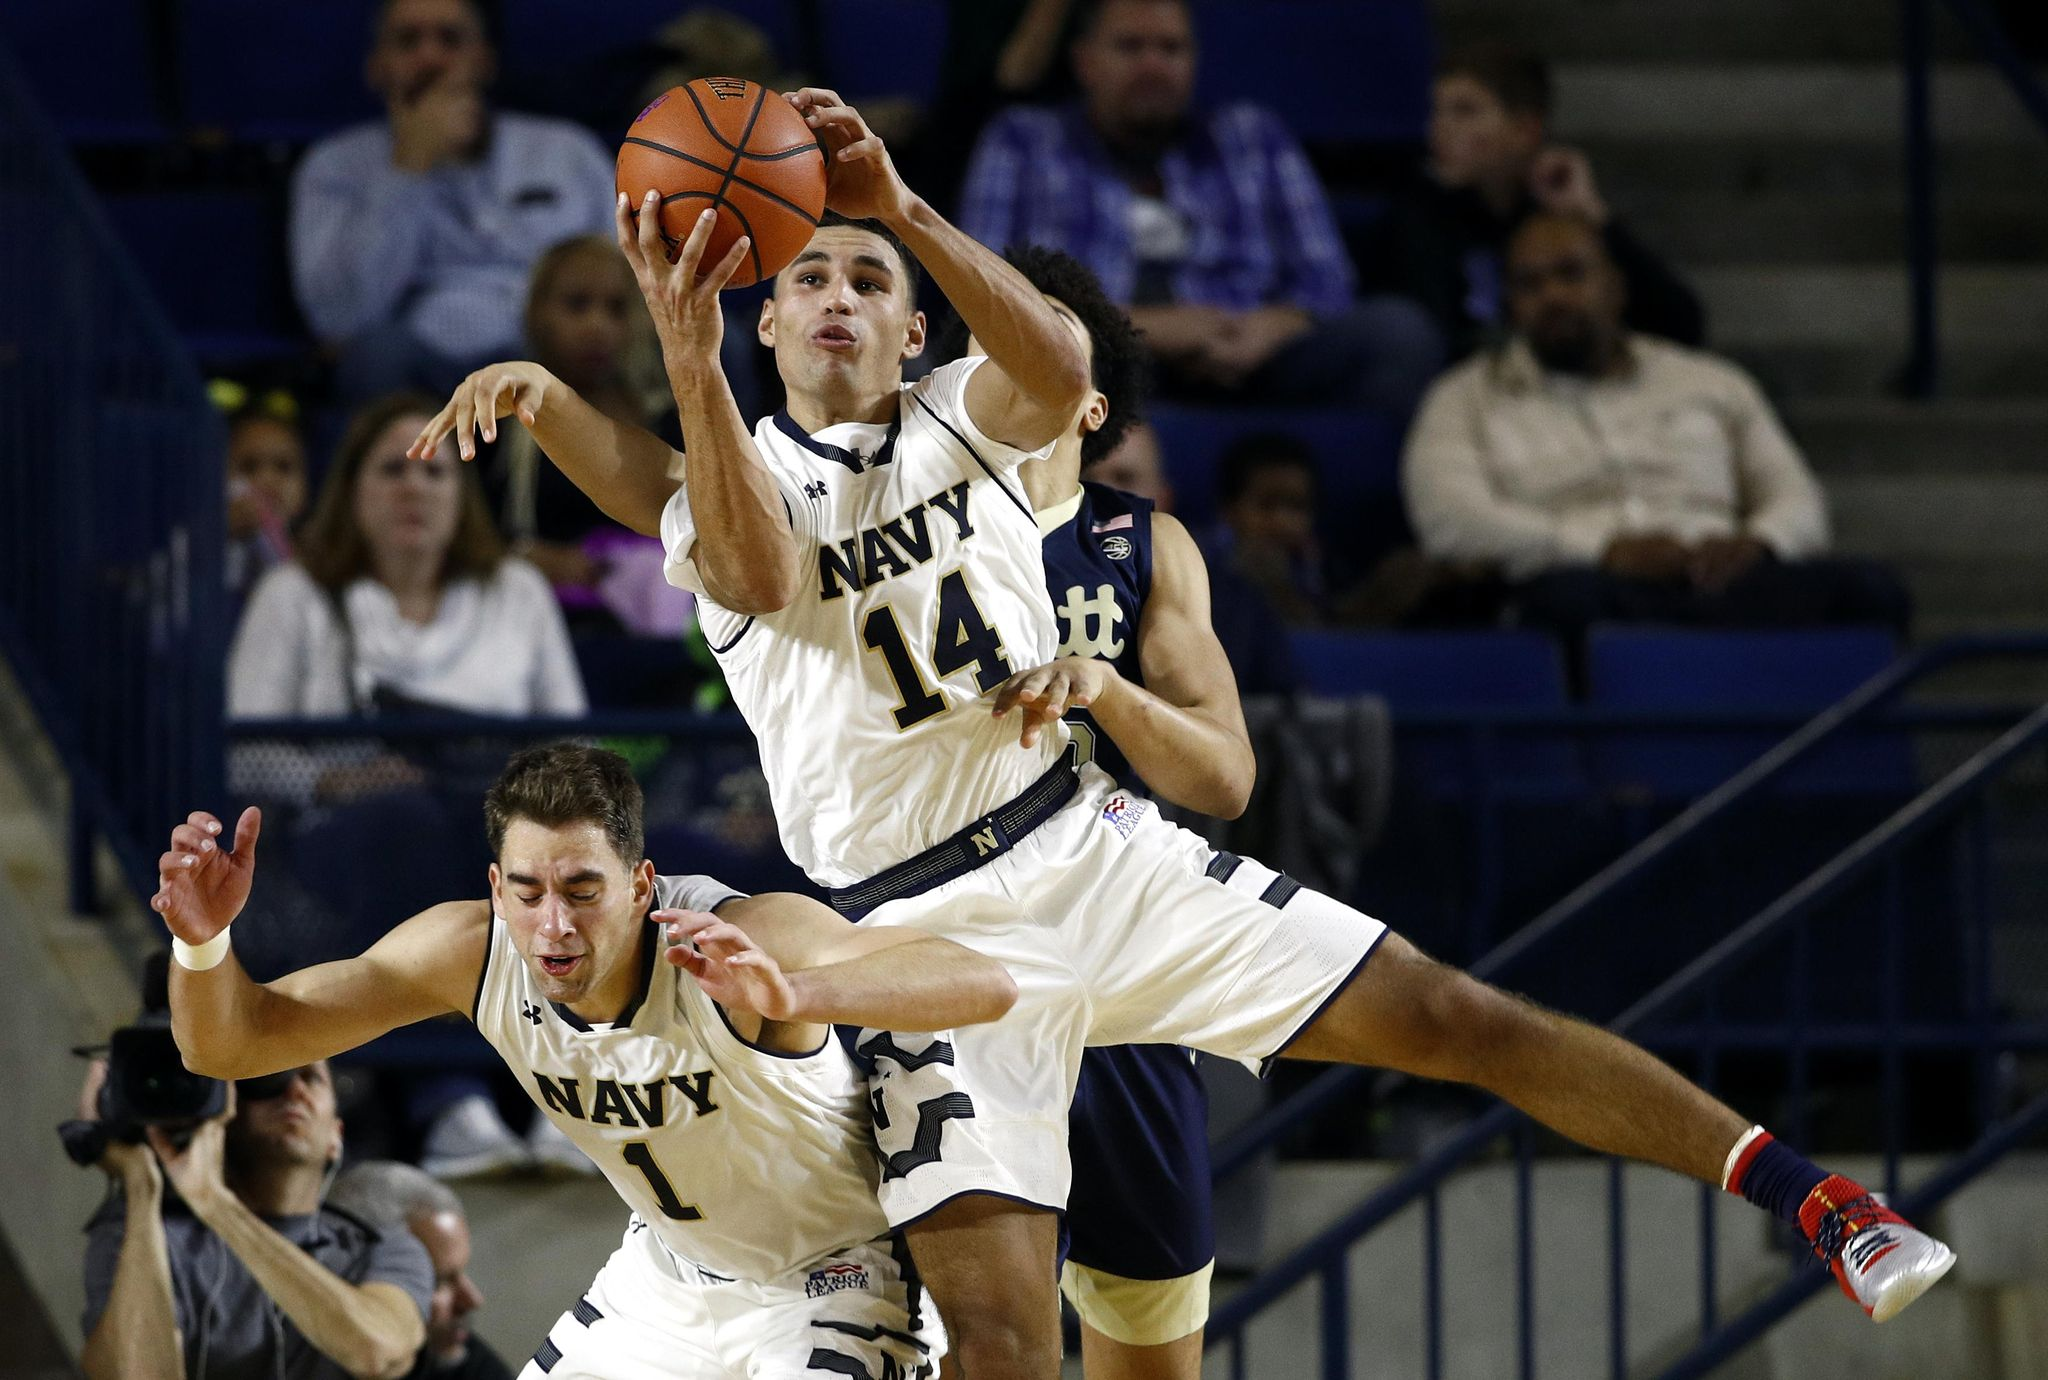 Maryland to visit Navy in Veterans Classic men's ...